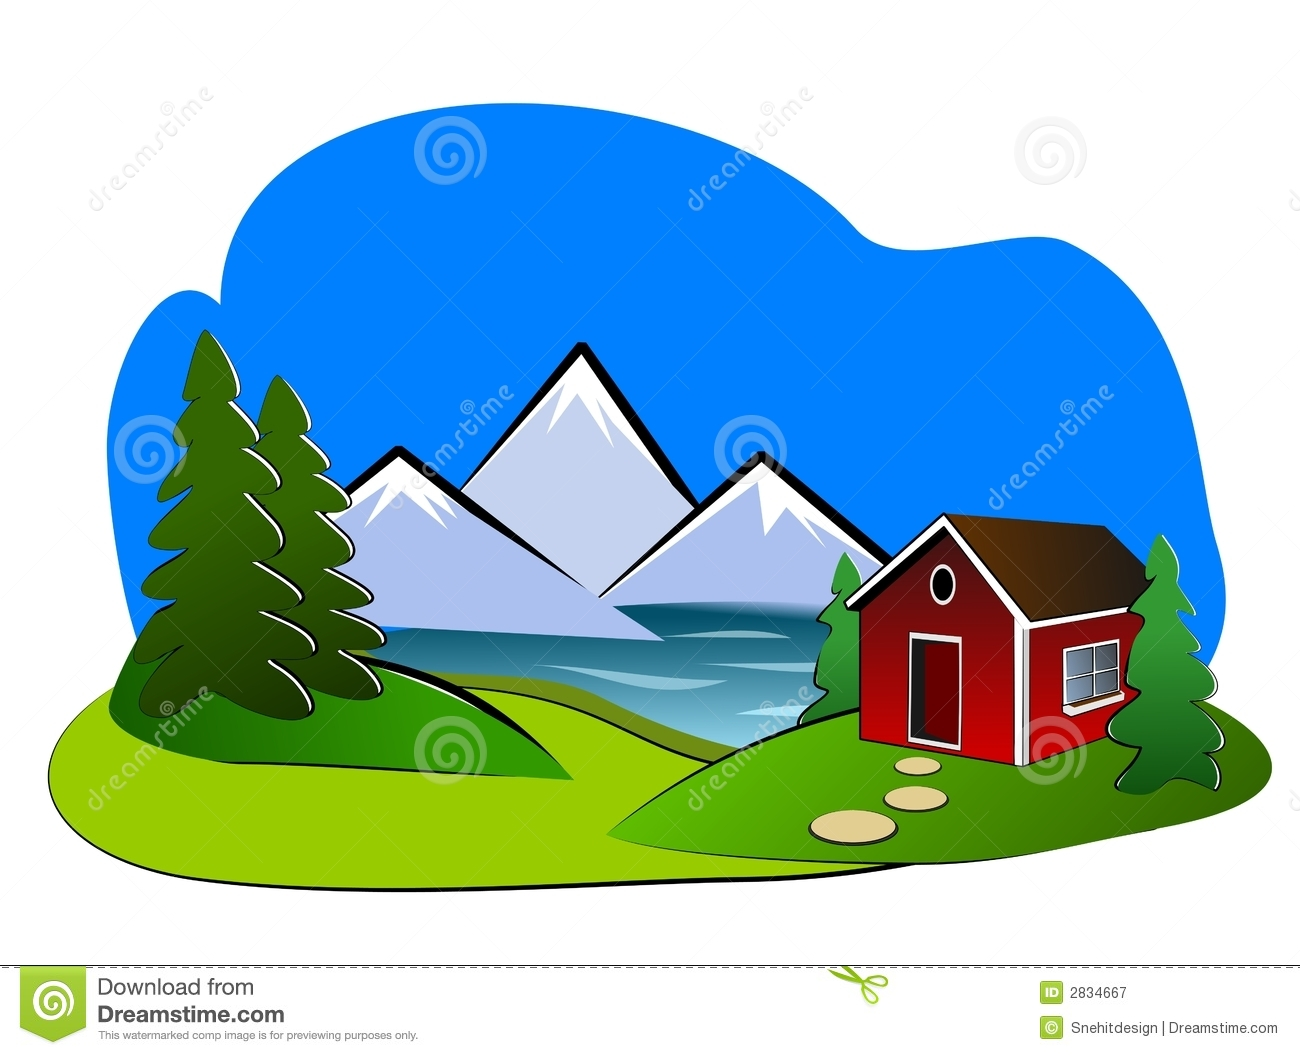 Country Landscape Clipart 2015sportwetten-at-usk: sportwetten-at-usk.blogspot.com/2015/02/country-landscape-clipart...